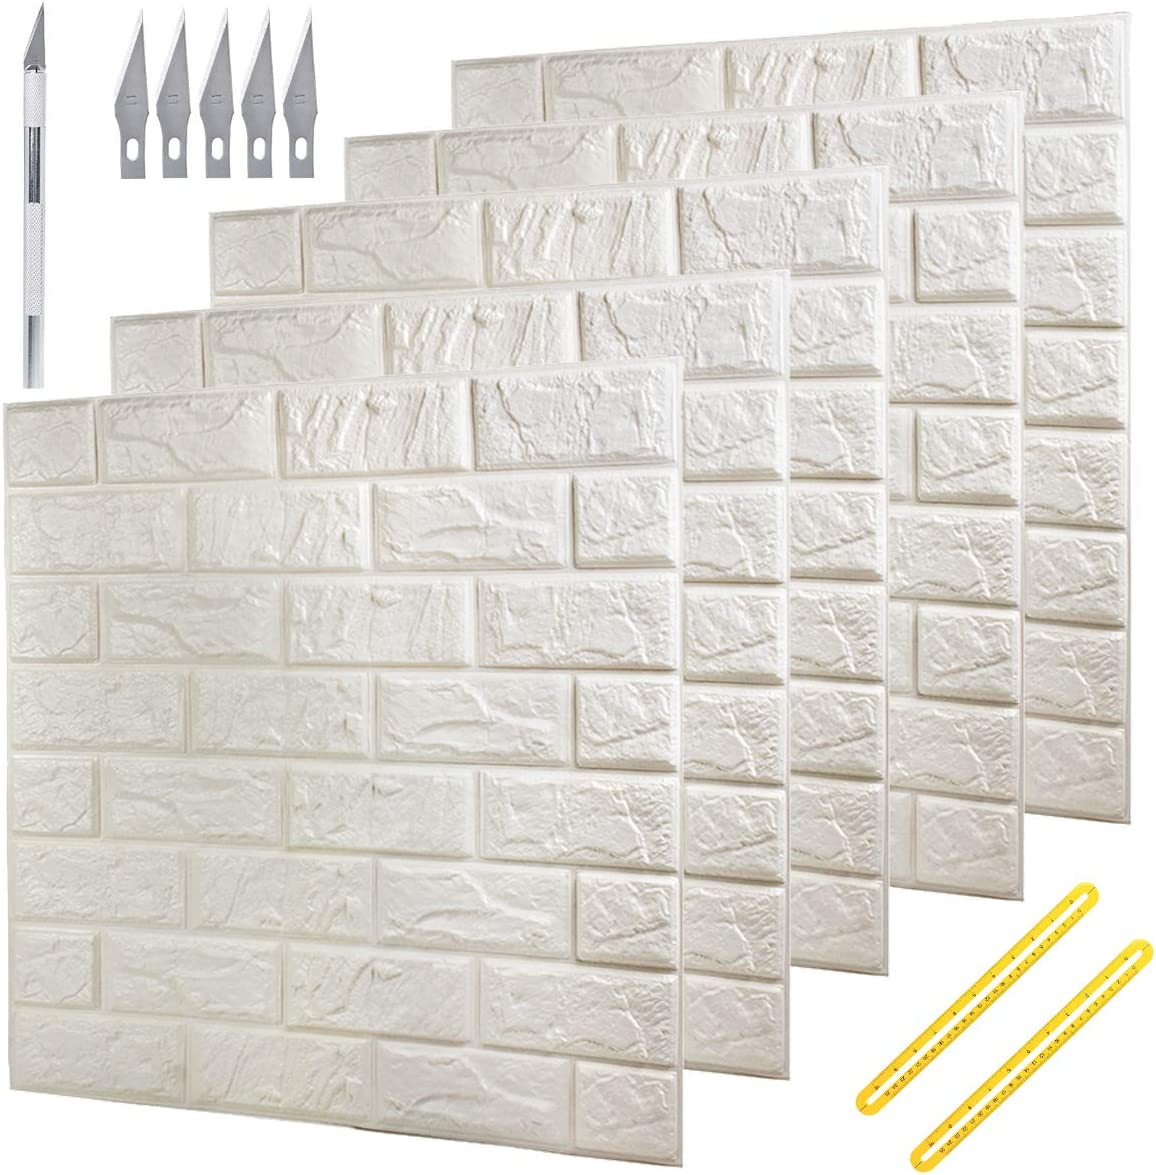 Deelf 20 Pcs 3d Brick Wallpaper Peel And Stick Panels White Brick Textured Effect Wall Décor Adhesive Wall Paper For Bathroom Kitchen Living Room Home Decoration 90 Square Feet Coverage Kitchen